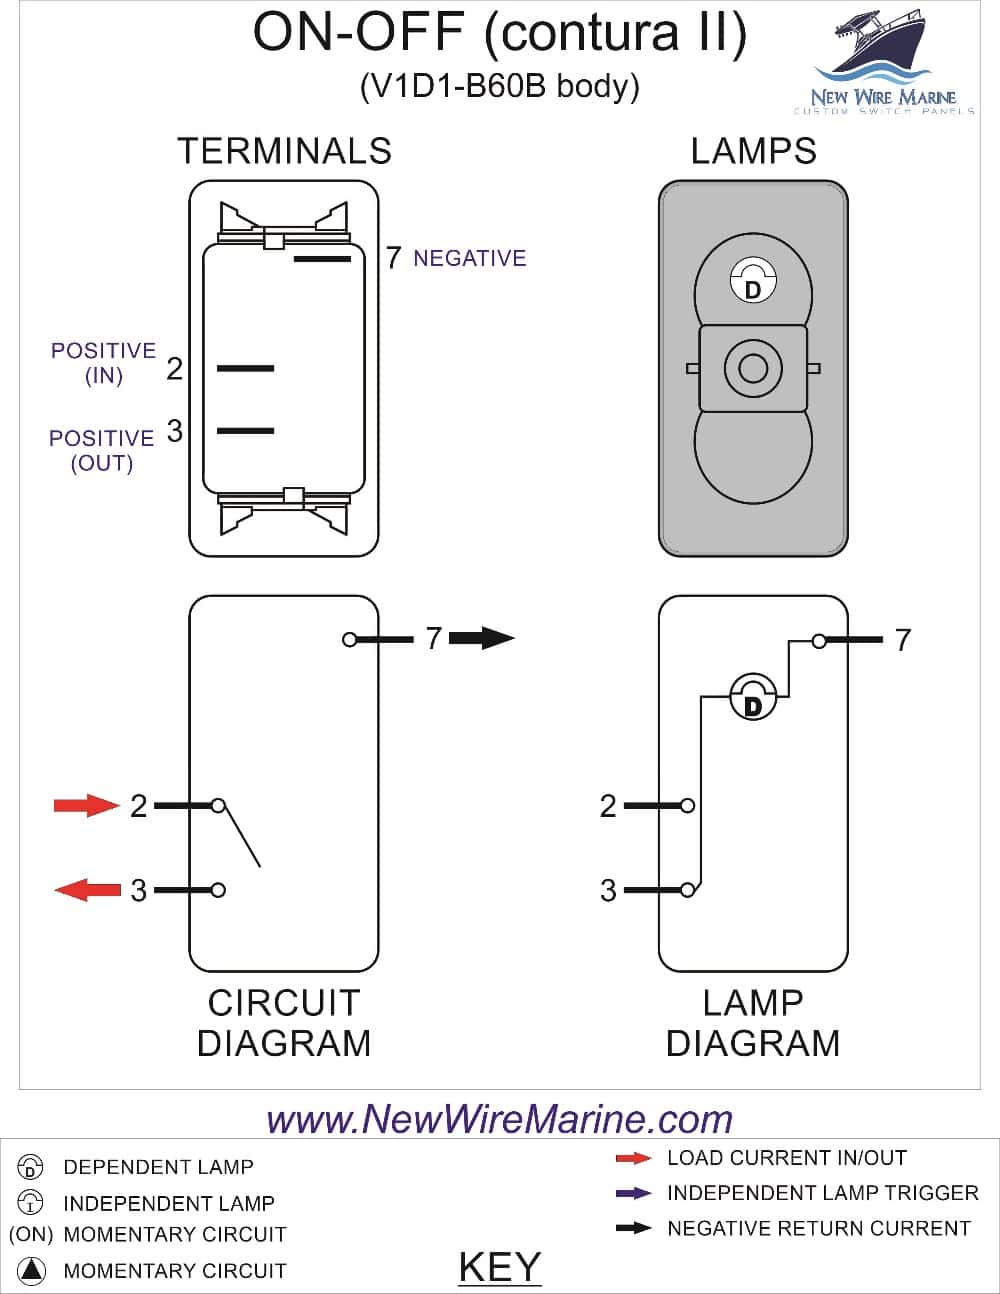 Toggle Switch Diagram - Wiring Diagram Blog - 3 Prong Toggle Switch Wiring Diagram